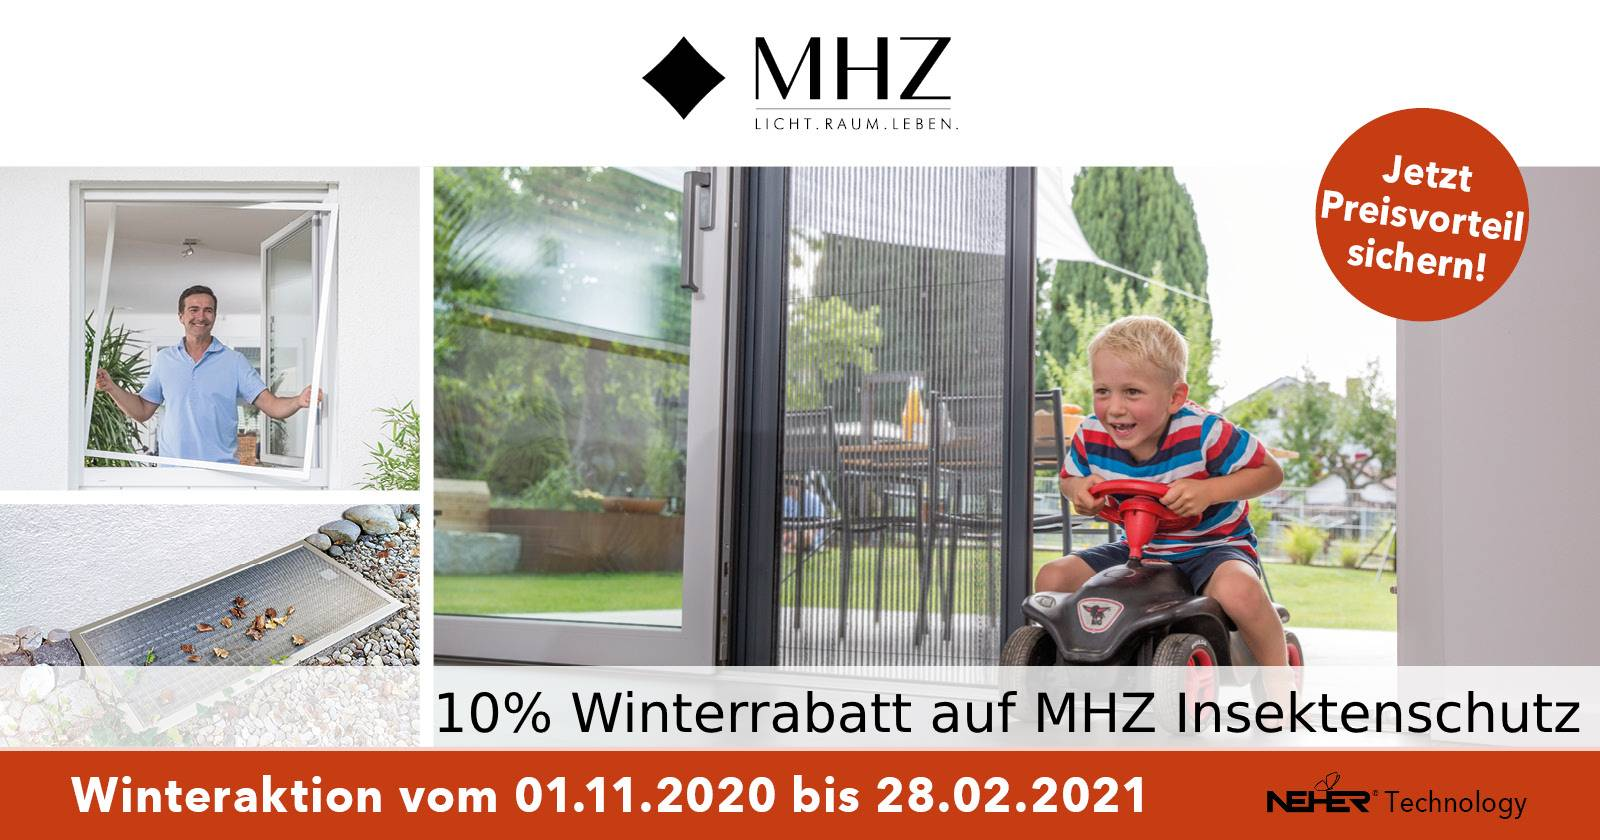 MHZ Winter-Aktion 10 % Rabatt